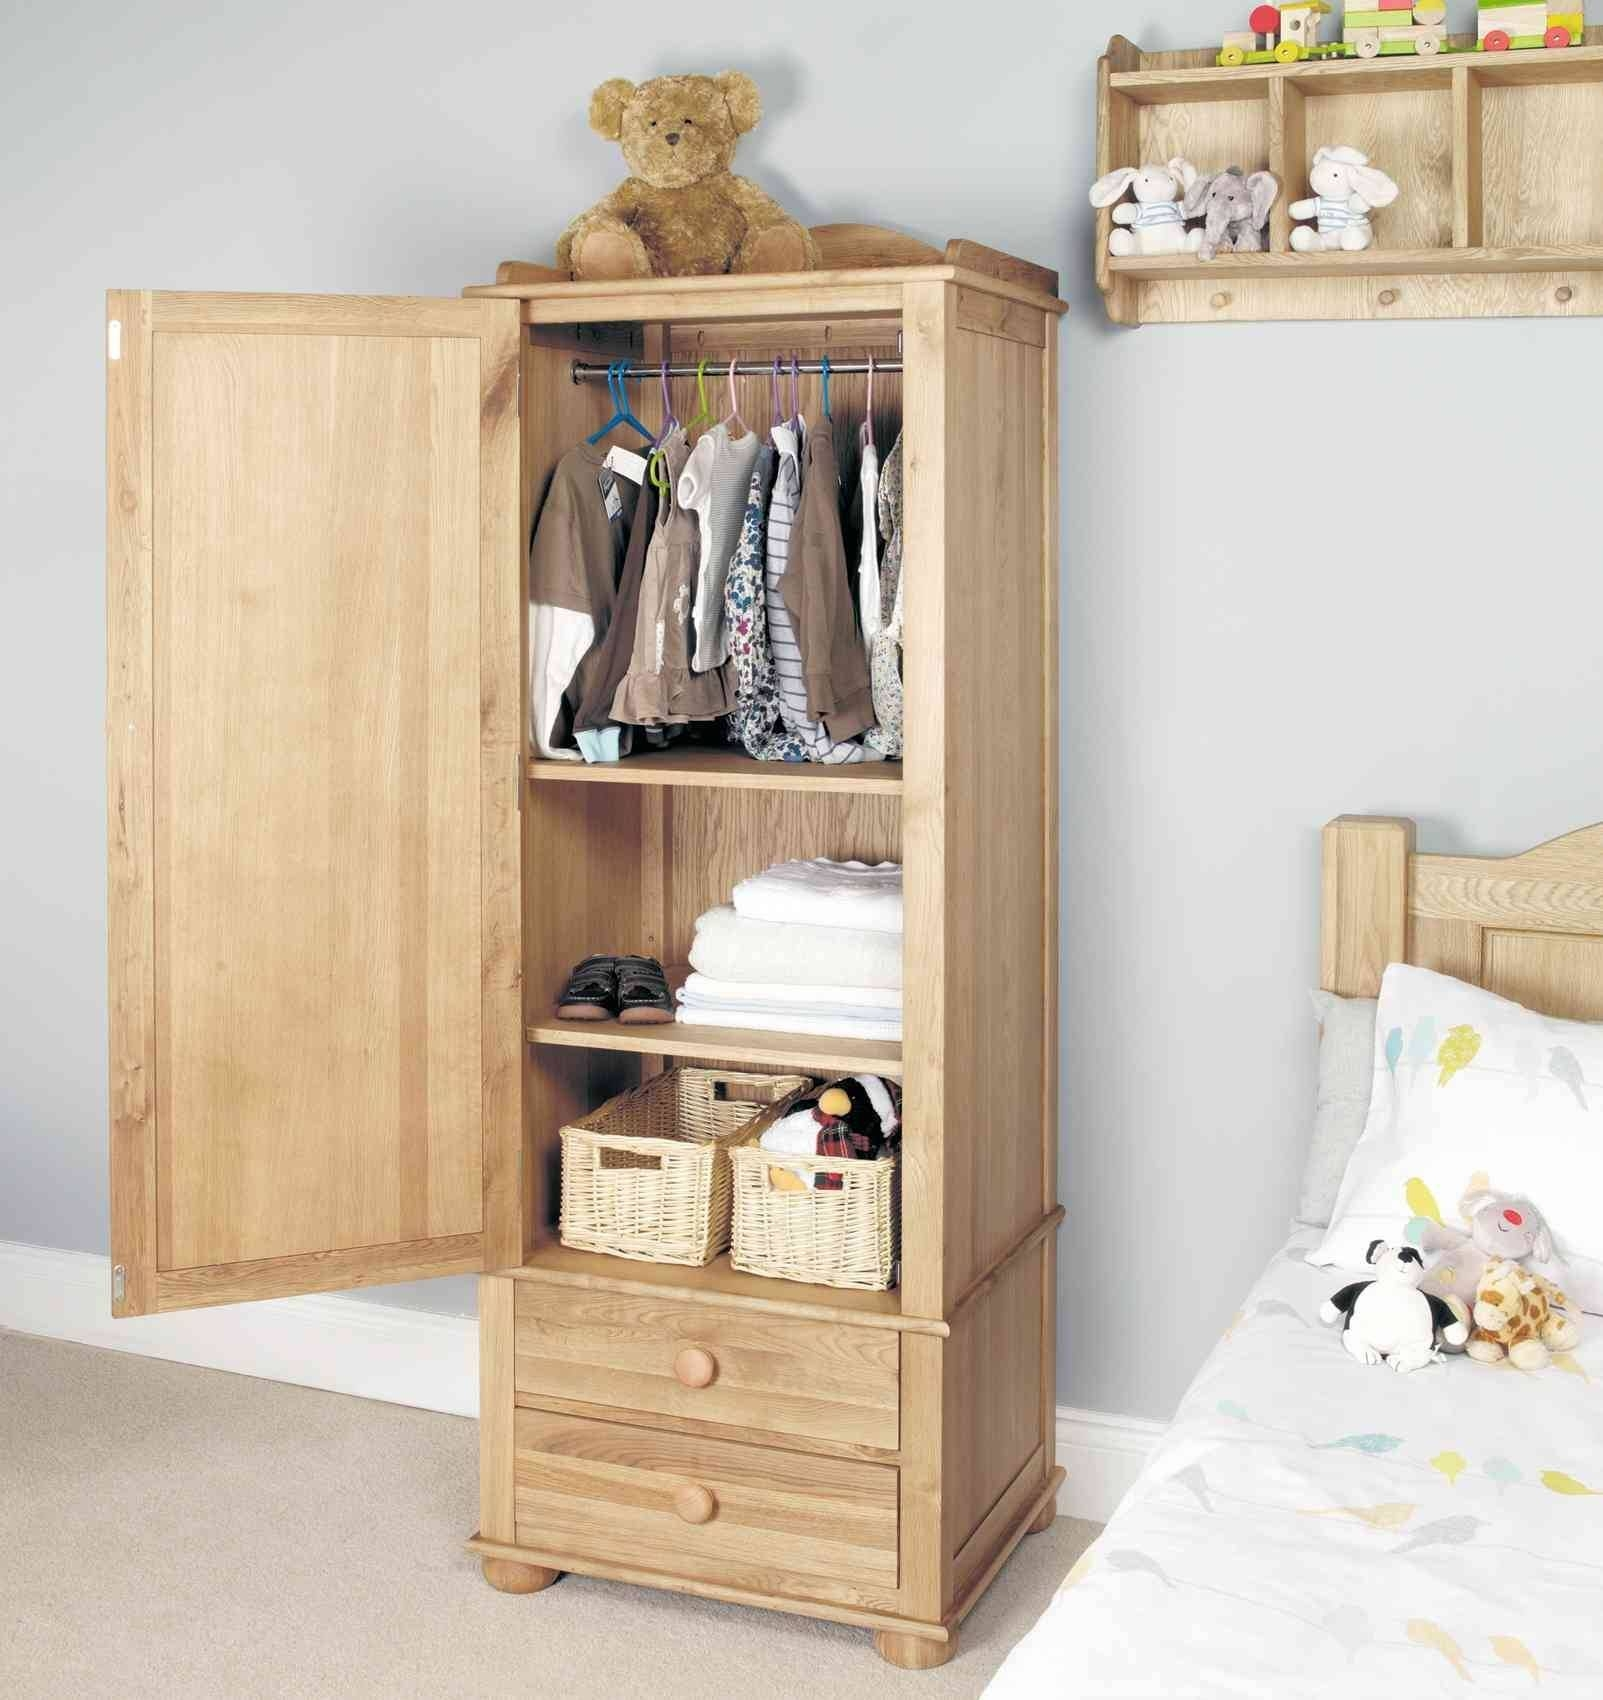 30 Best Childrens Wardrobes With Drawers And Shelves Intended For Oak Wardrobe With Drawers And Shelves (Photo 4 of 30)